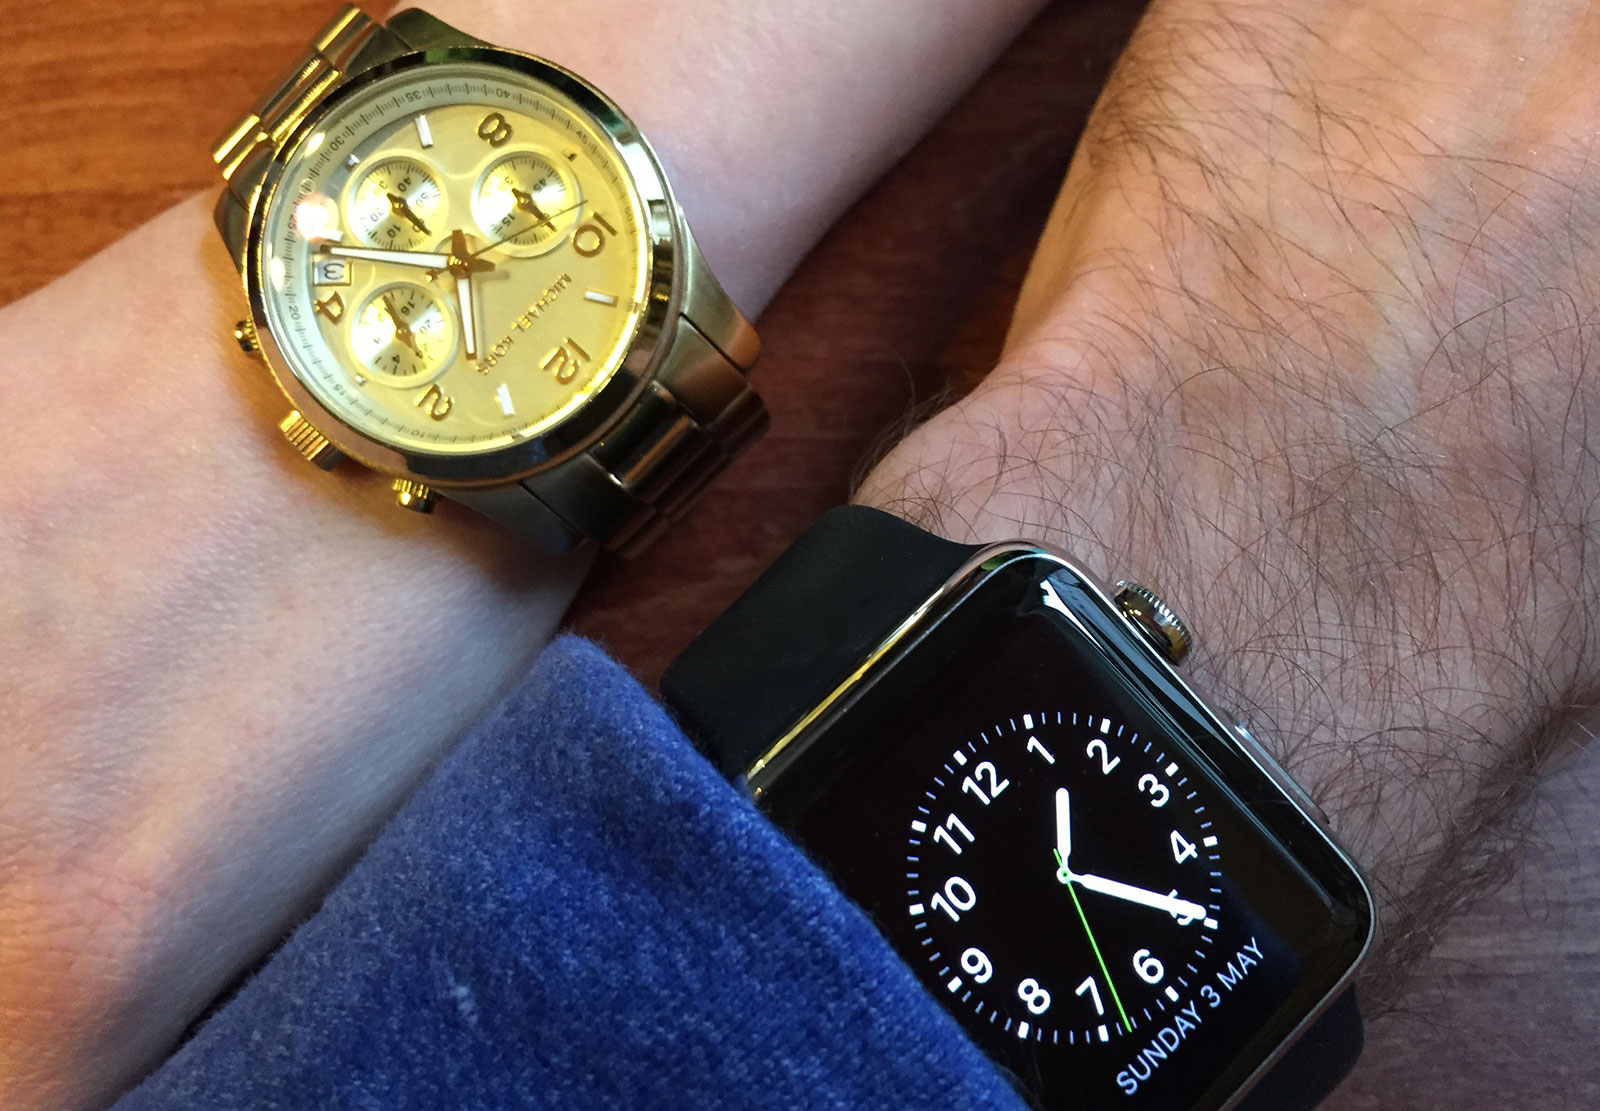 Apple Watch with Lauren's Michael Kors